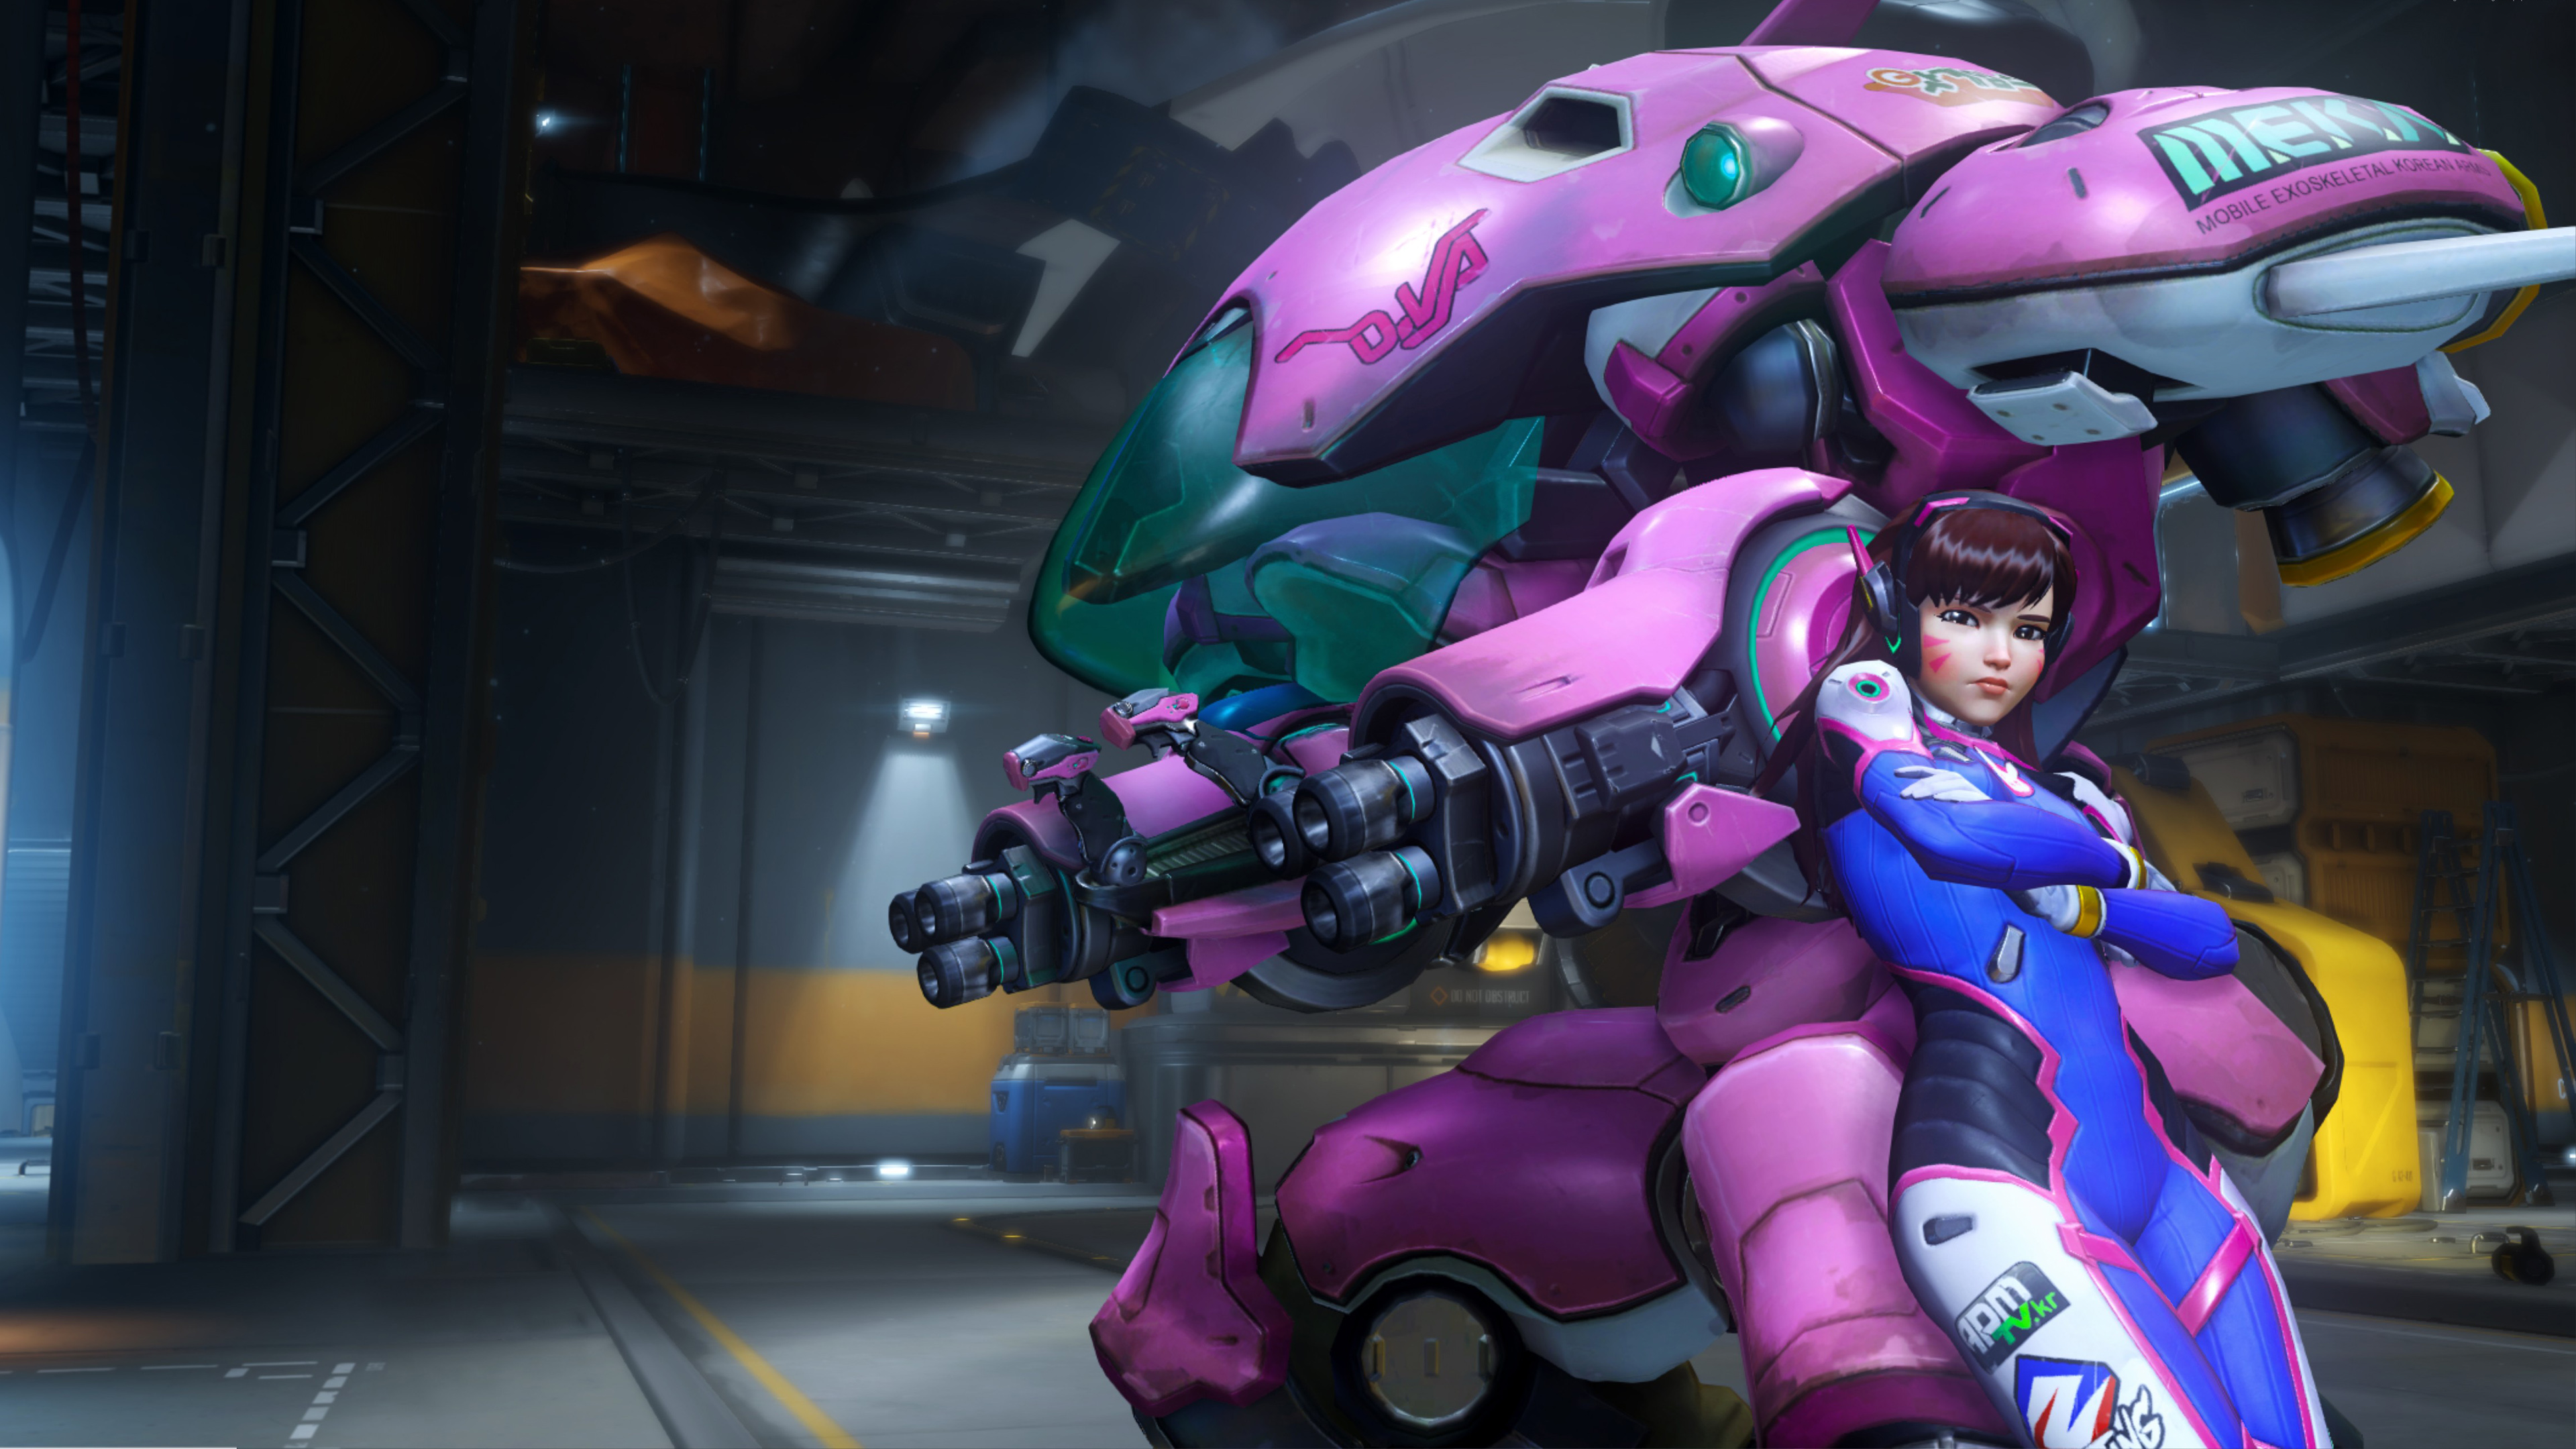 Overwatch Wallpapers, Pictures, Images